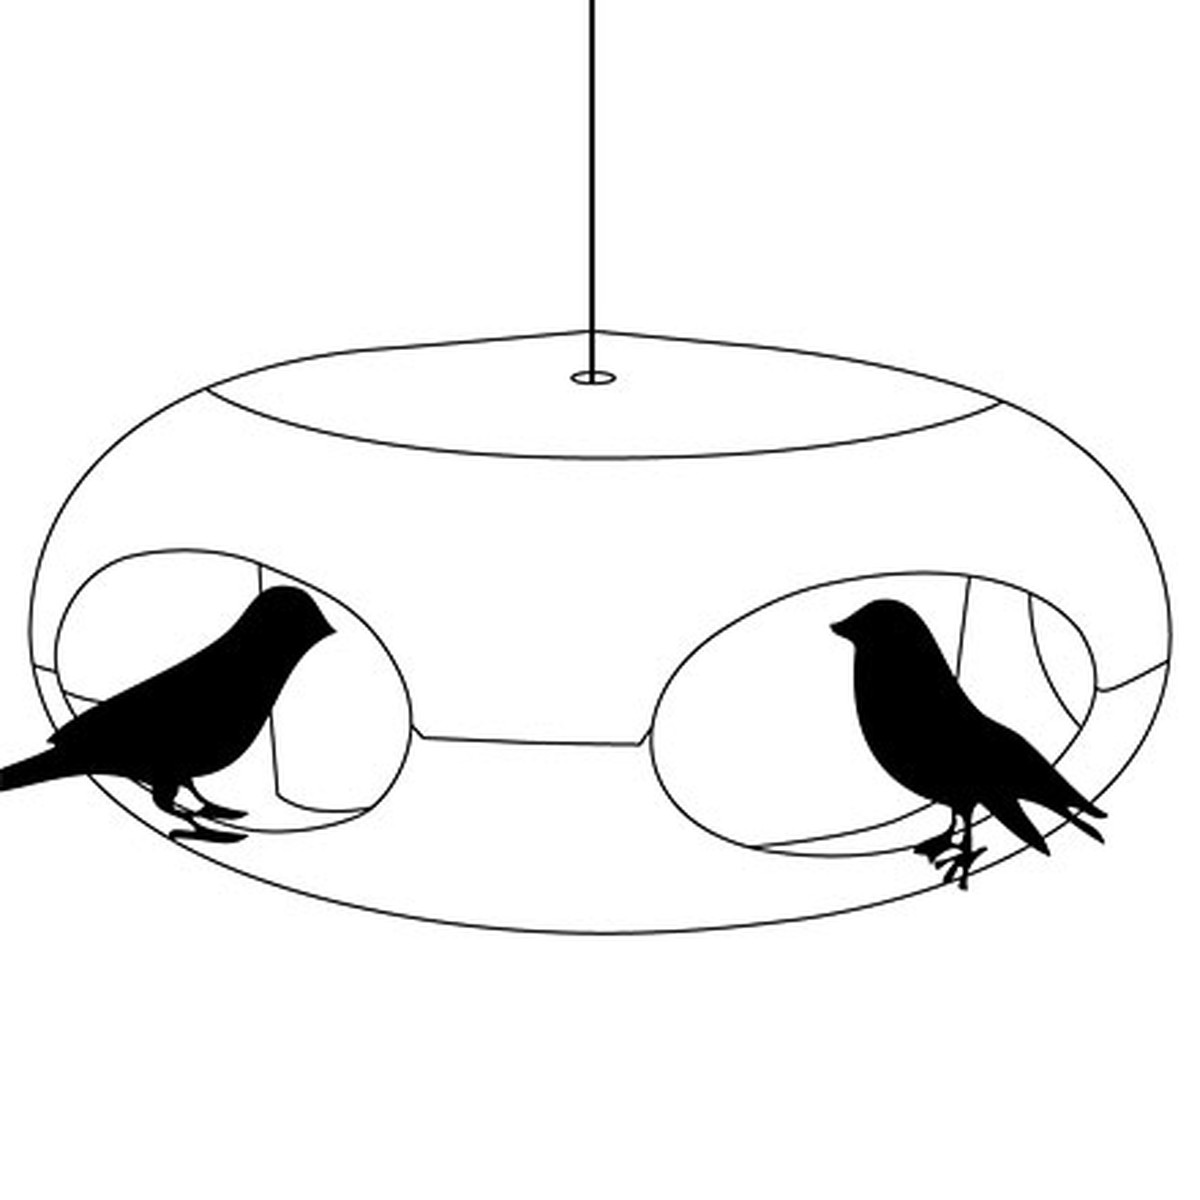 1200x1200 Pip] Bird Feeder By Koziol In The Shop